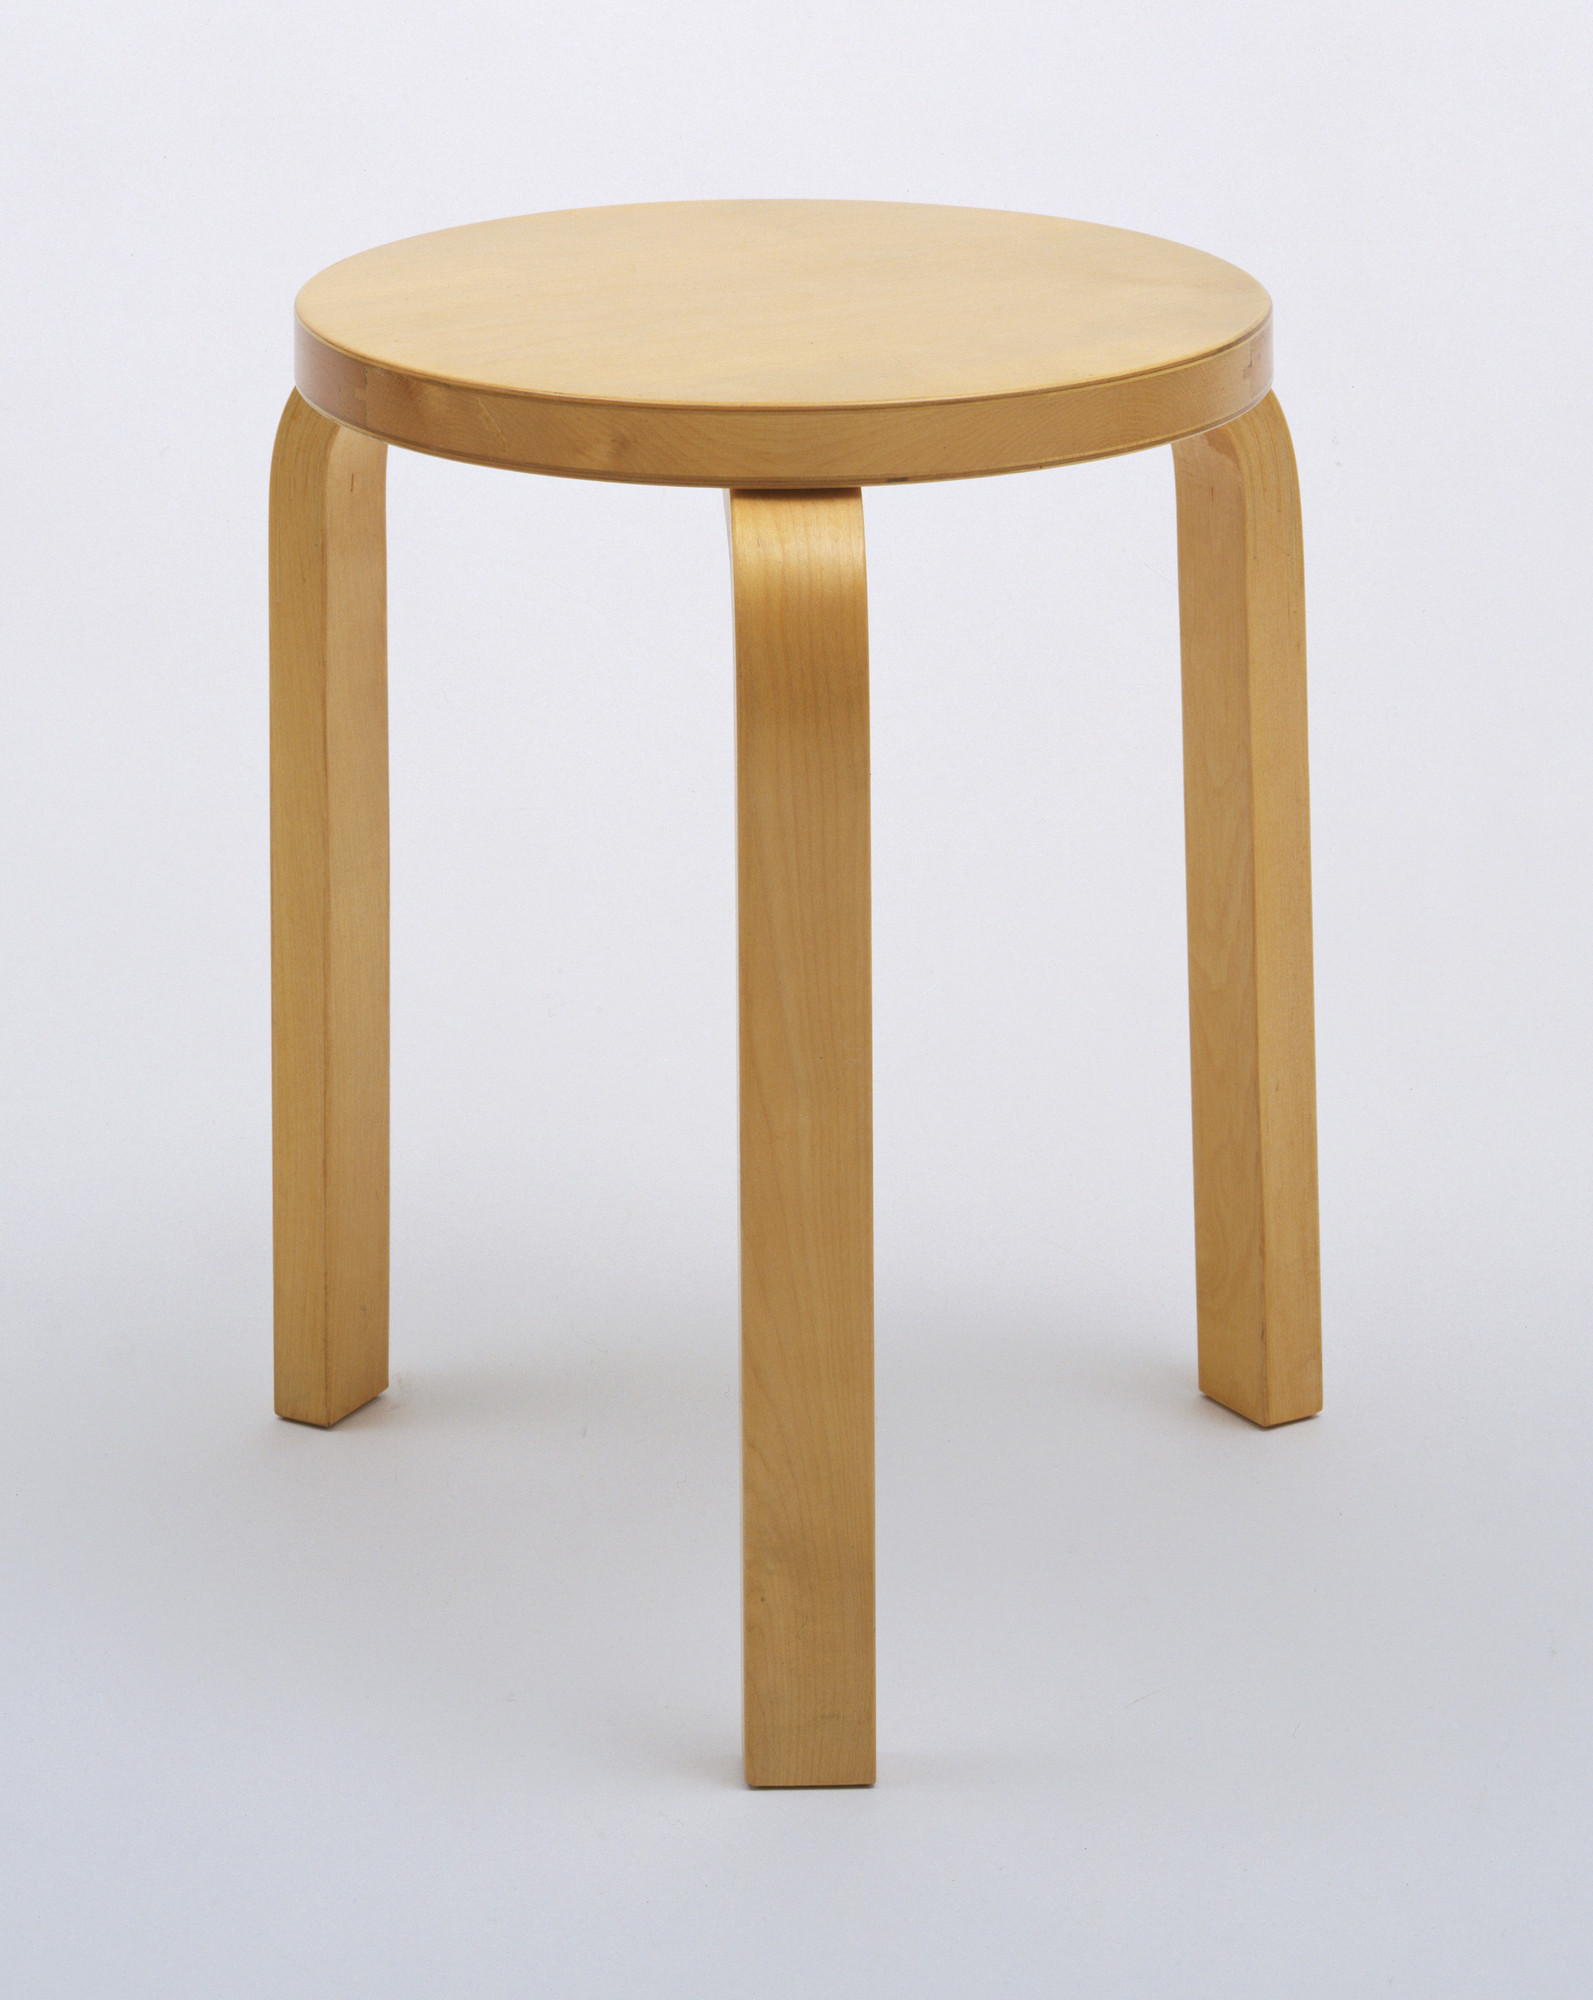 Alvar Aalto. Stacking Stool (model 60). 1932-33